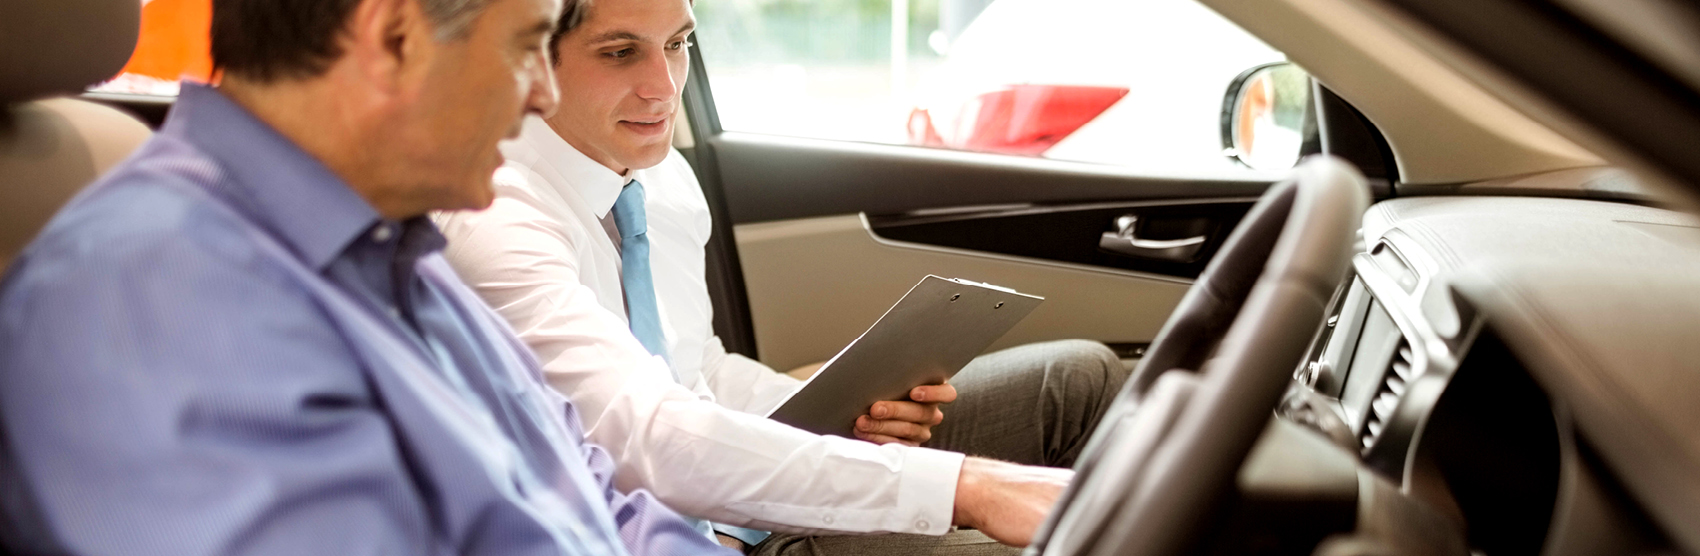 Man in car talking with car salesman about a new car purchase